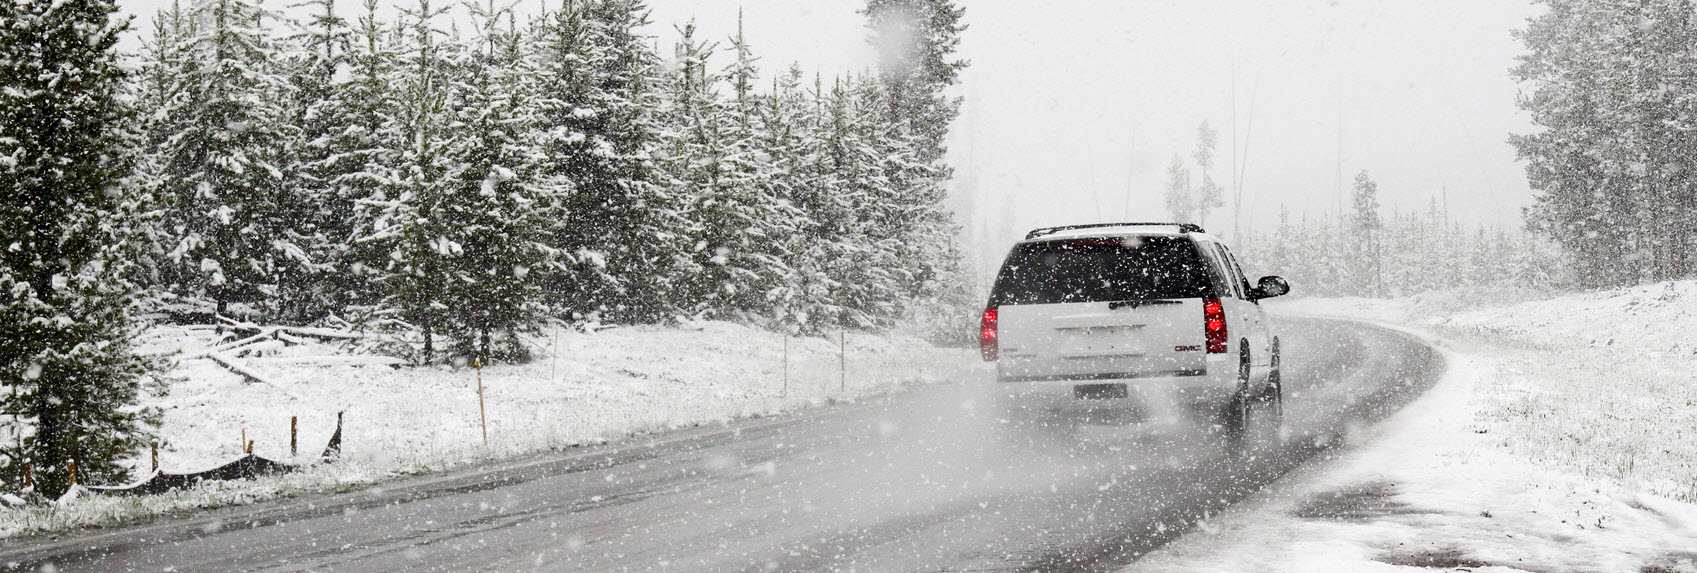 driving-safely-for-winter